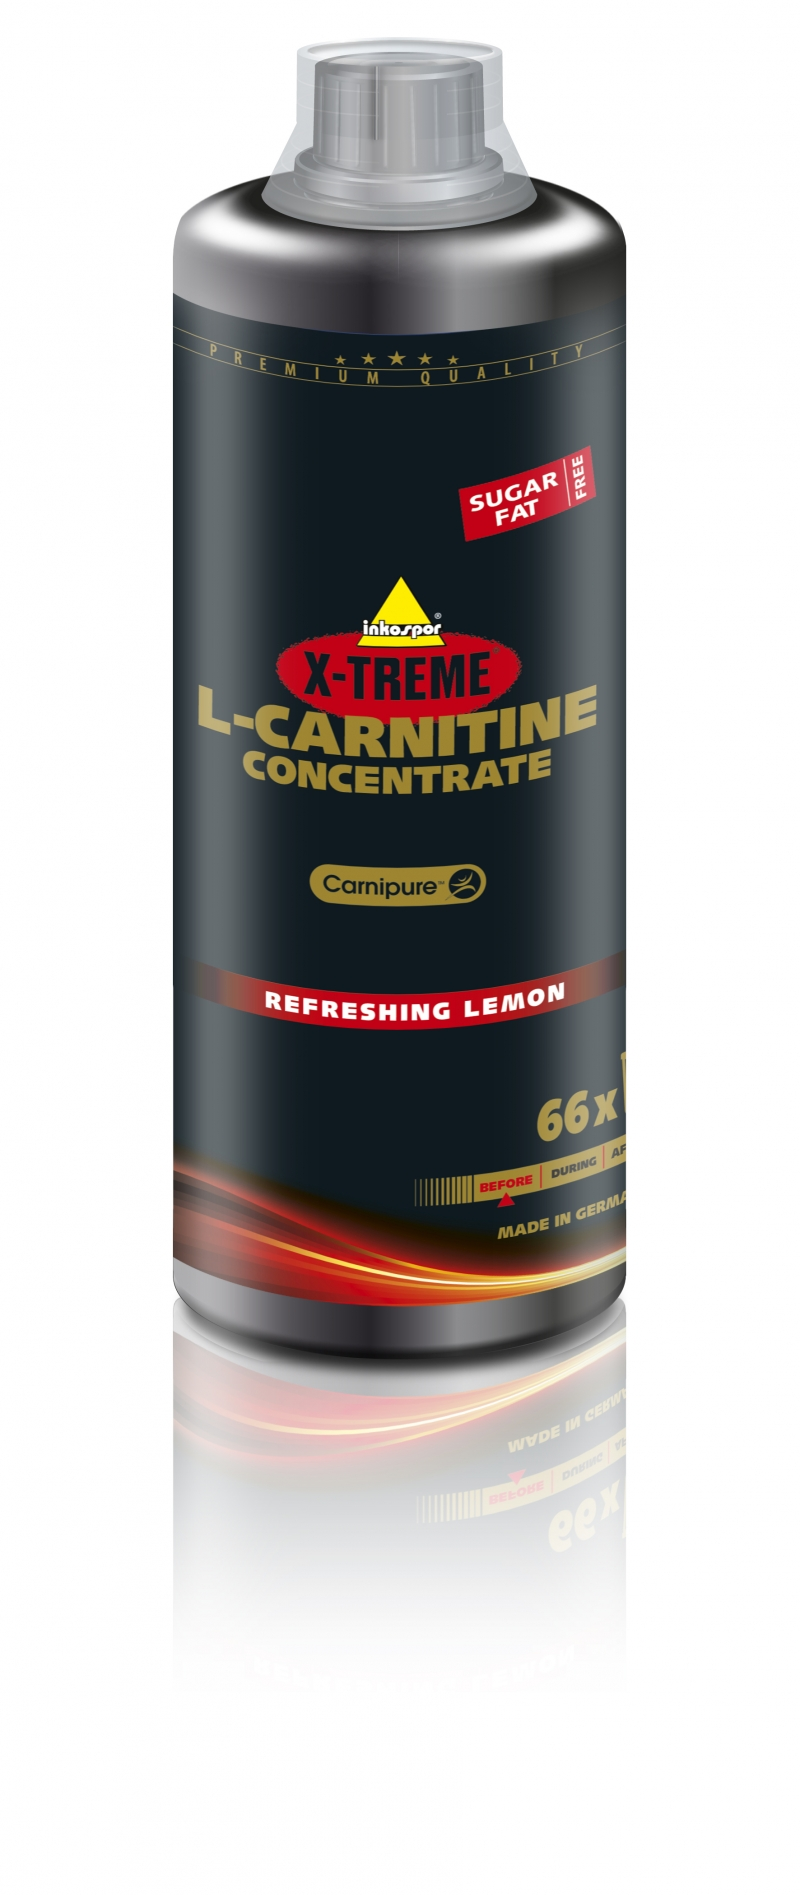 Inkospor X-treme L-carnitine Concentrate